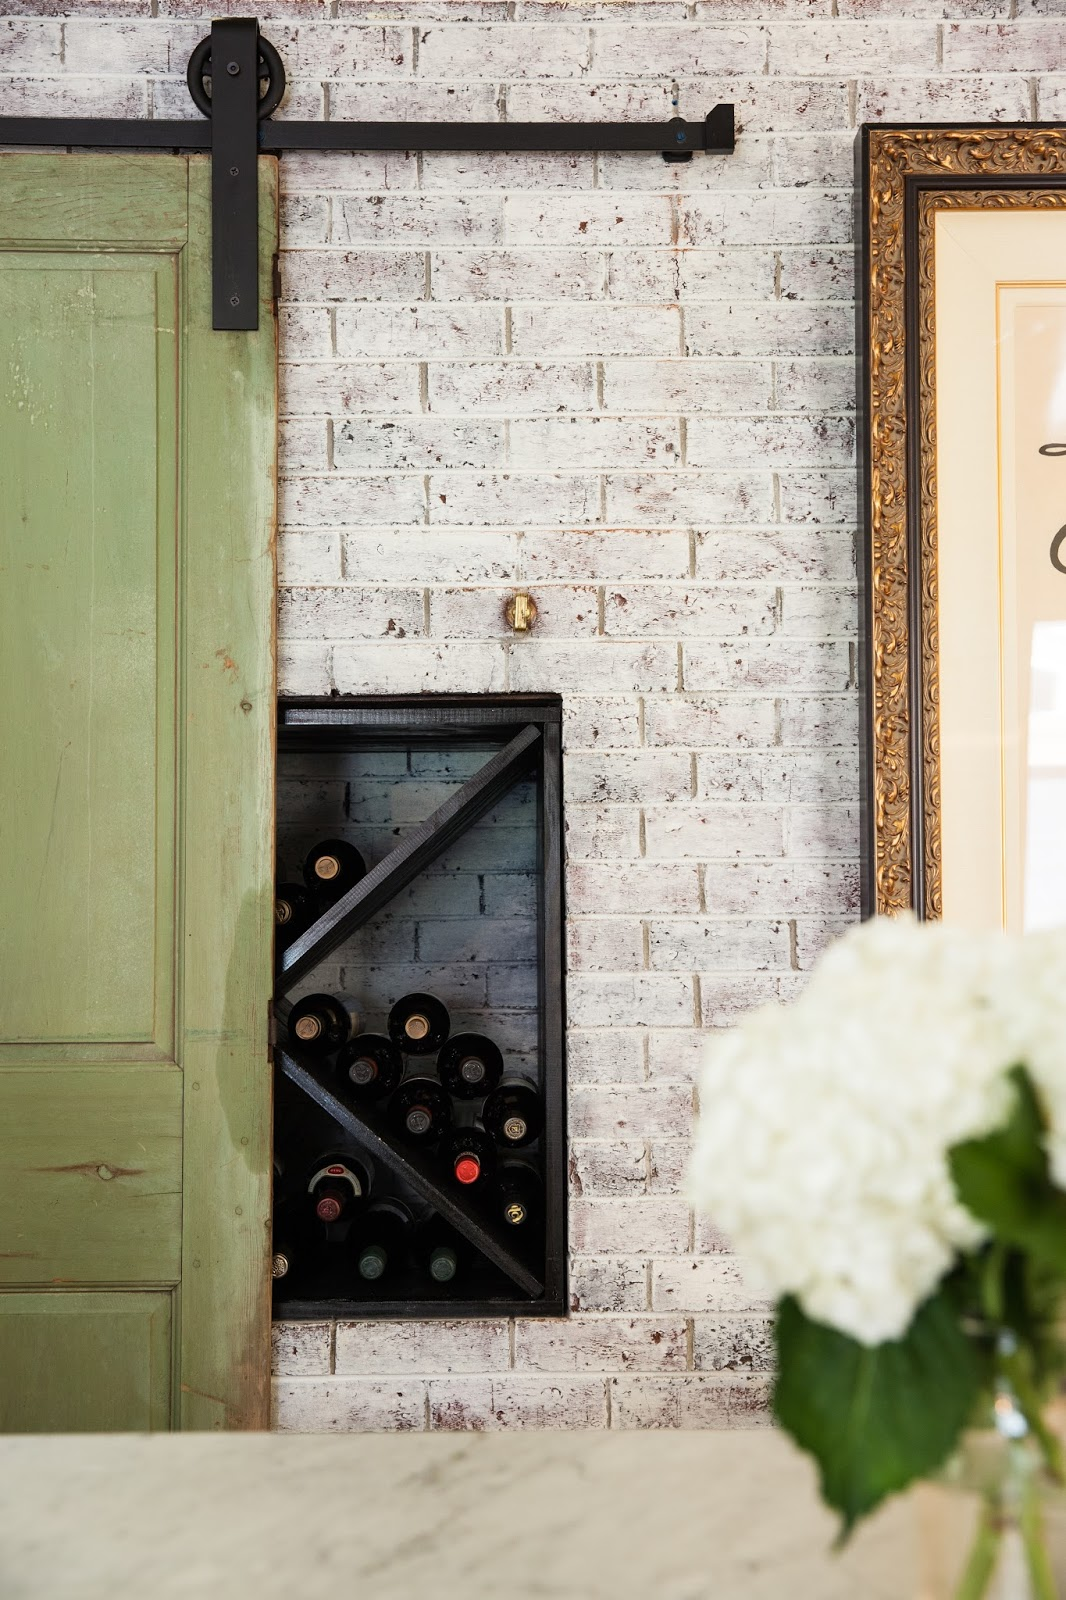 Kim found a piece of wall paneling from Old House Parts in Kennebunk, ME that was a perfect size to use as a door. She hung it barn style, and the original green patina created the perfect balance to the red, yellow, and black color scheme.